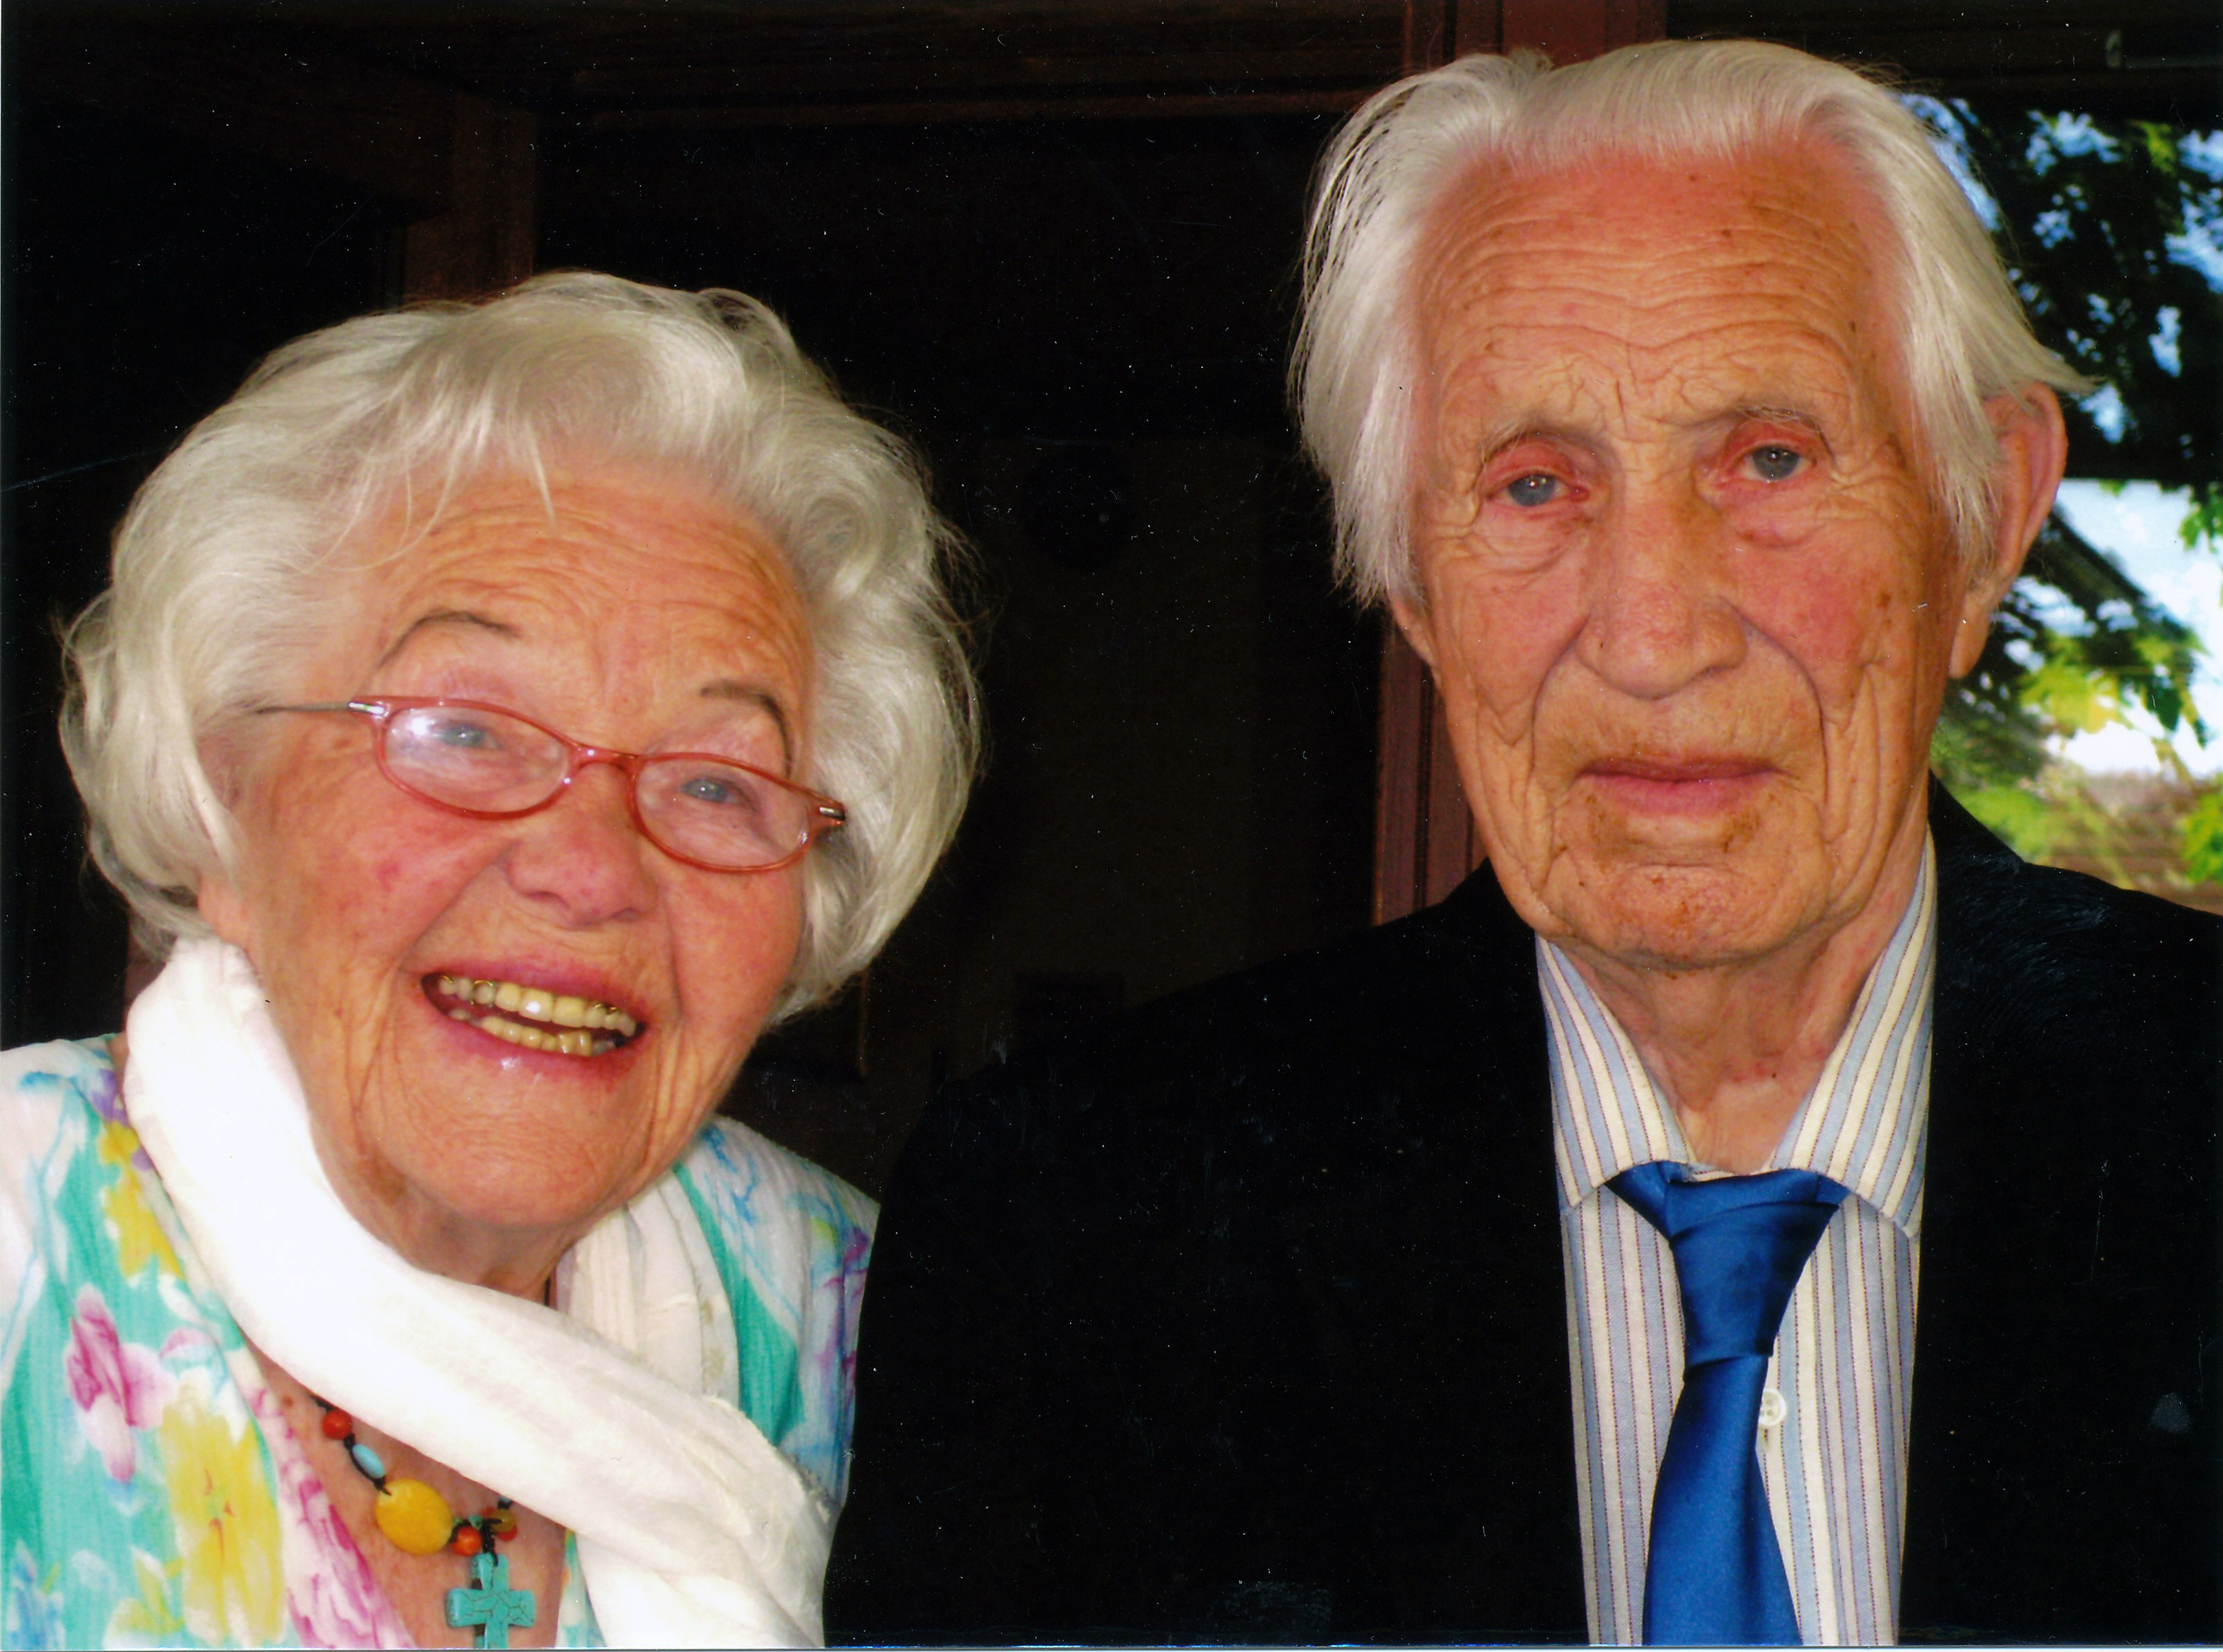 Leif Solberg and his wife, Reidun, whom he married in 1940